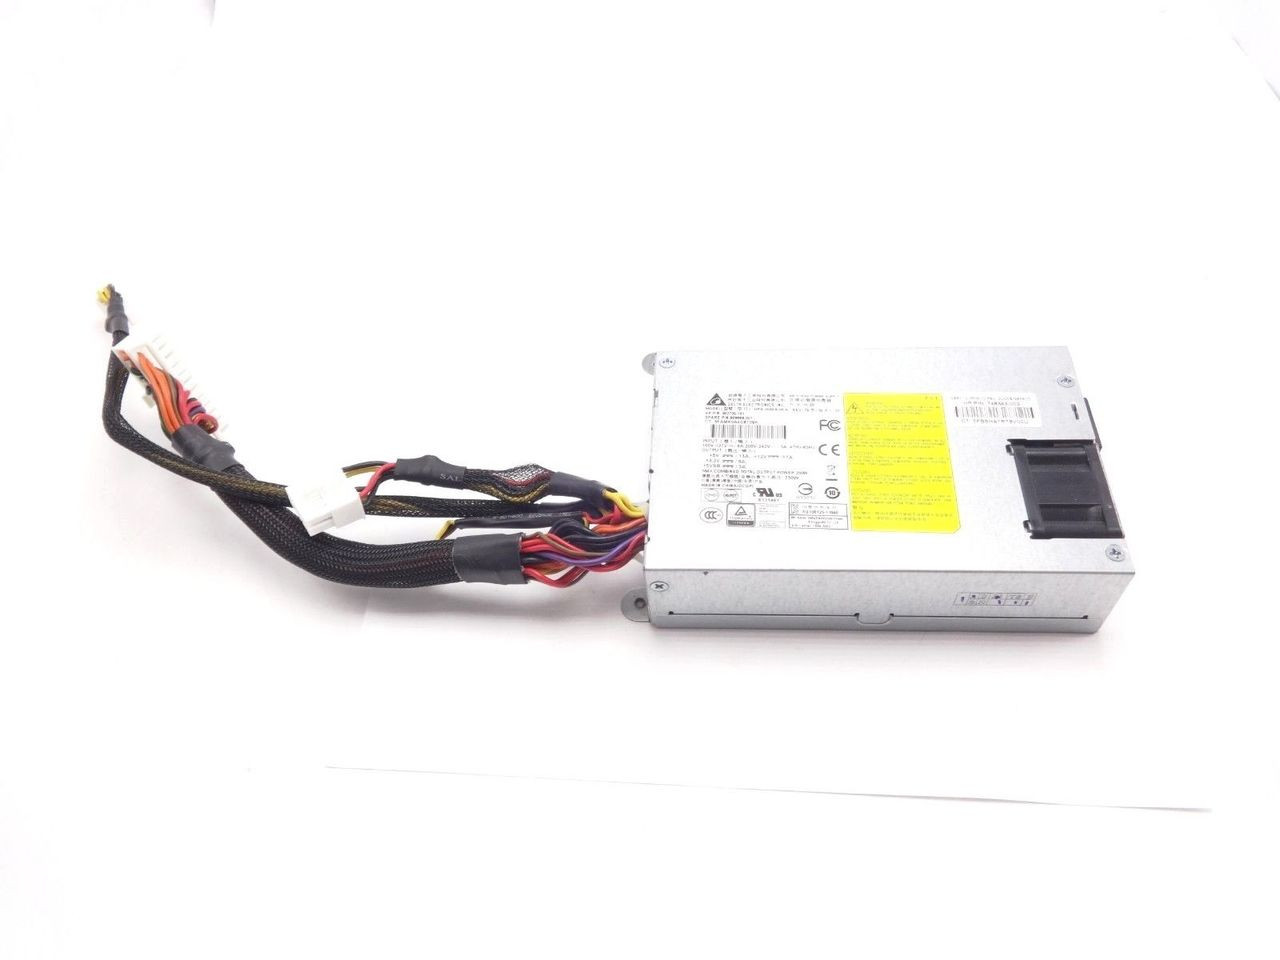 HP 748343-002 DL320E G8 250W V2 Power Supply